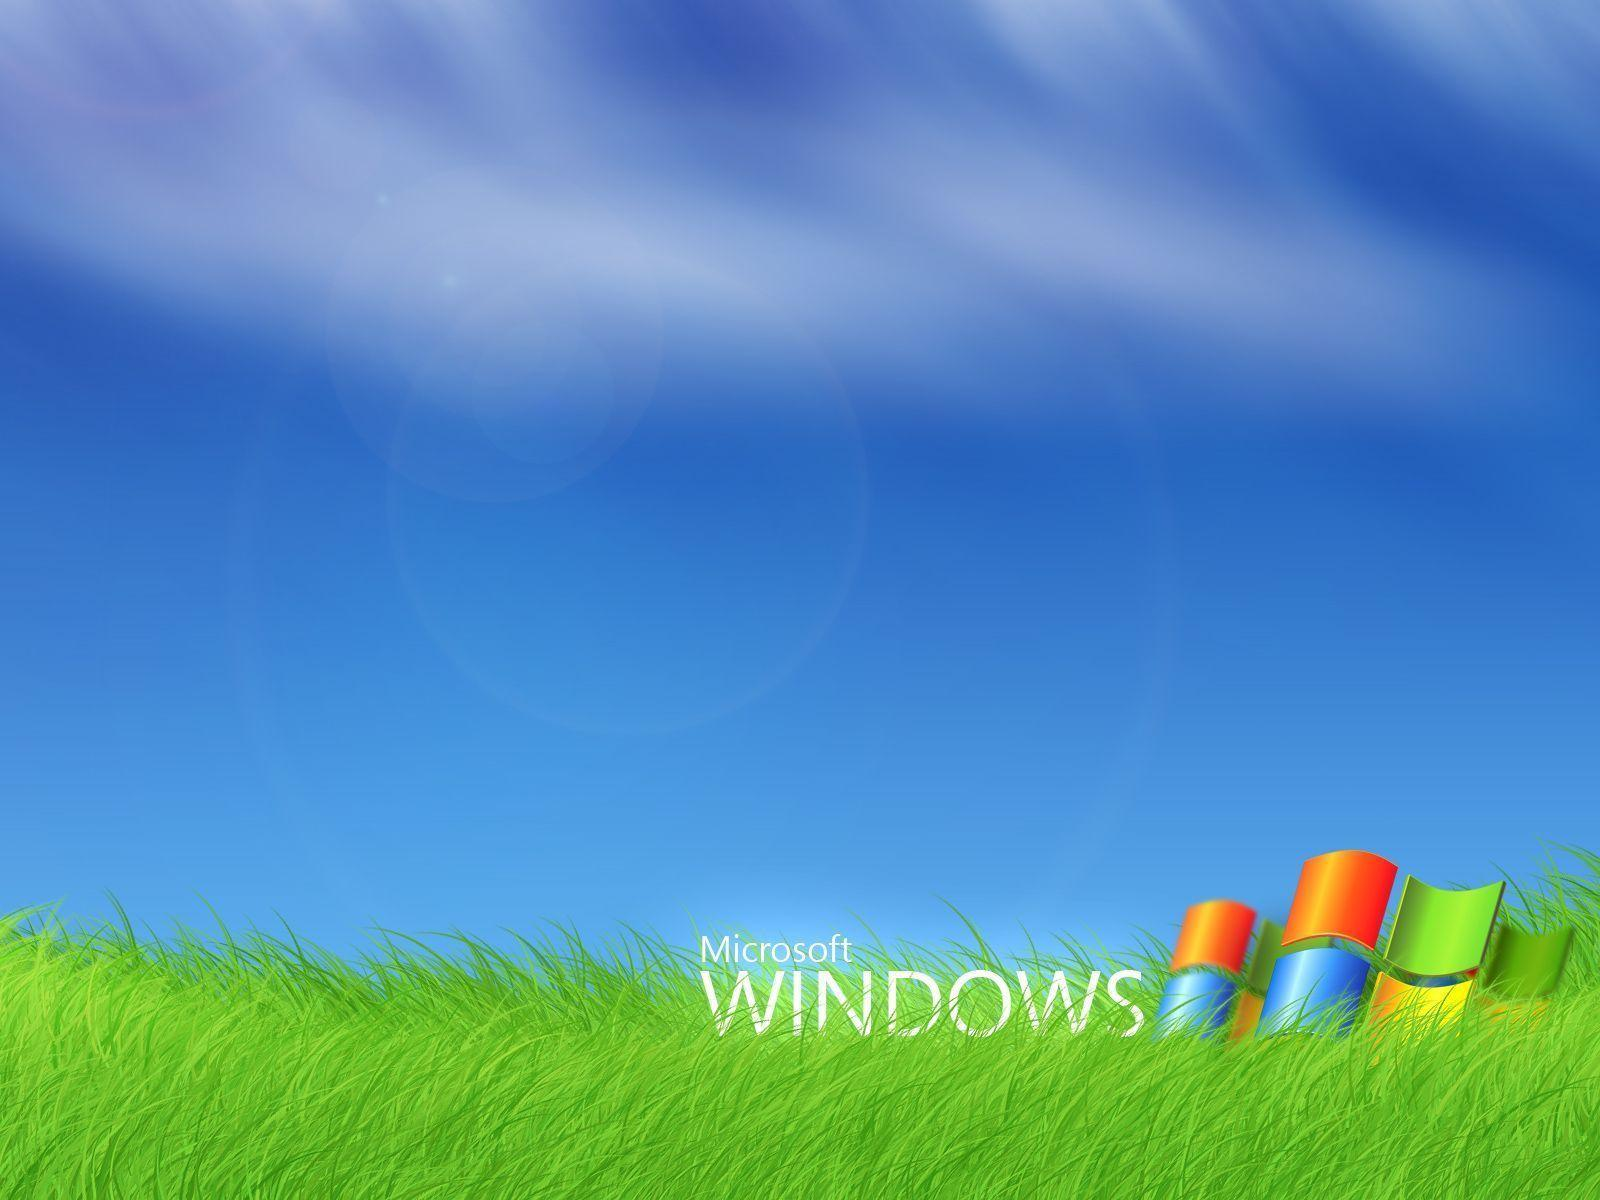 Microsoft Desktop Backgrounds 1600x1200